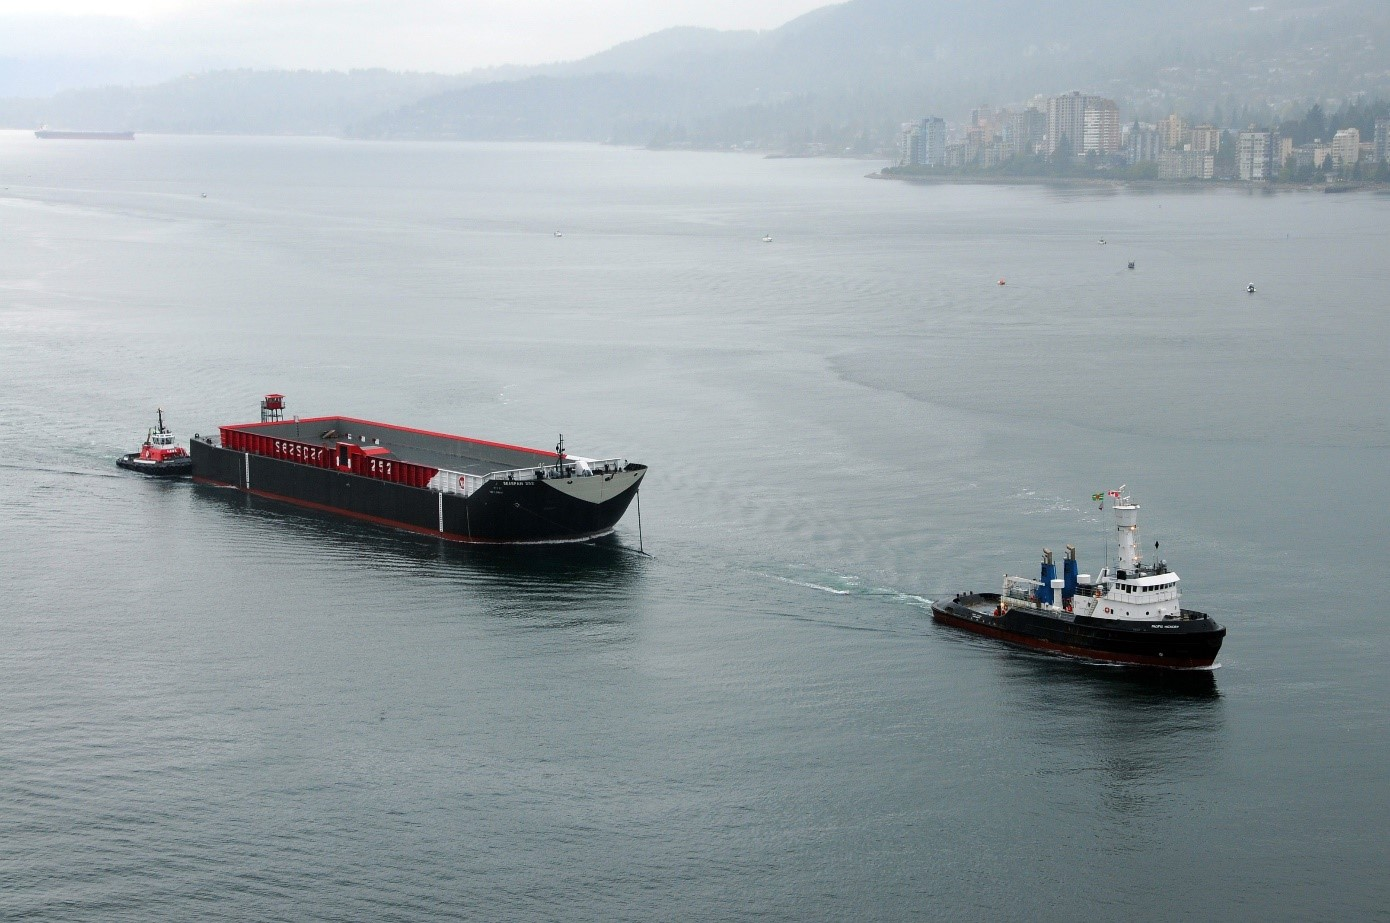 Pacific Hickory returning from China and entering Vancouver Harbour with a barge in Tow, September 2015. Photo Ray J Ordano